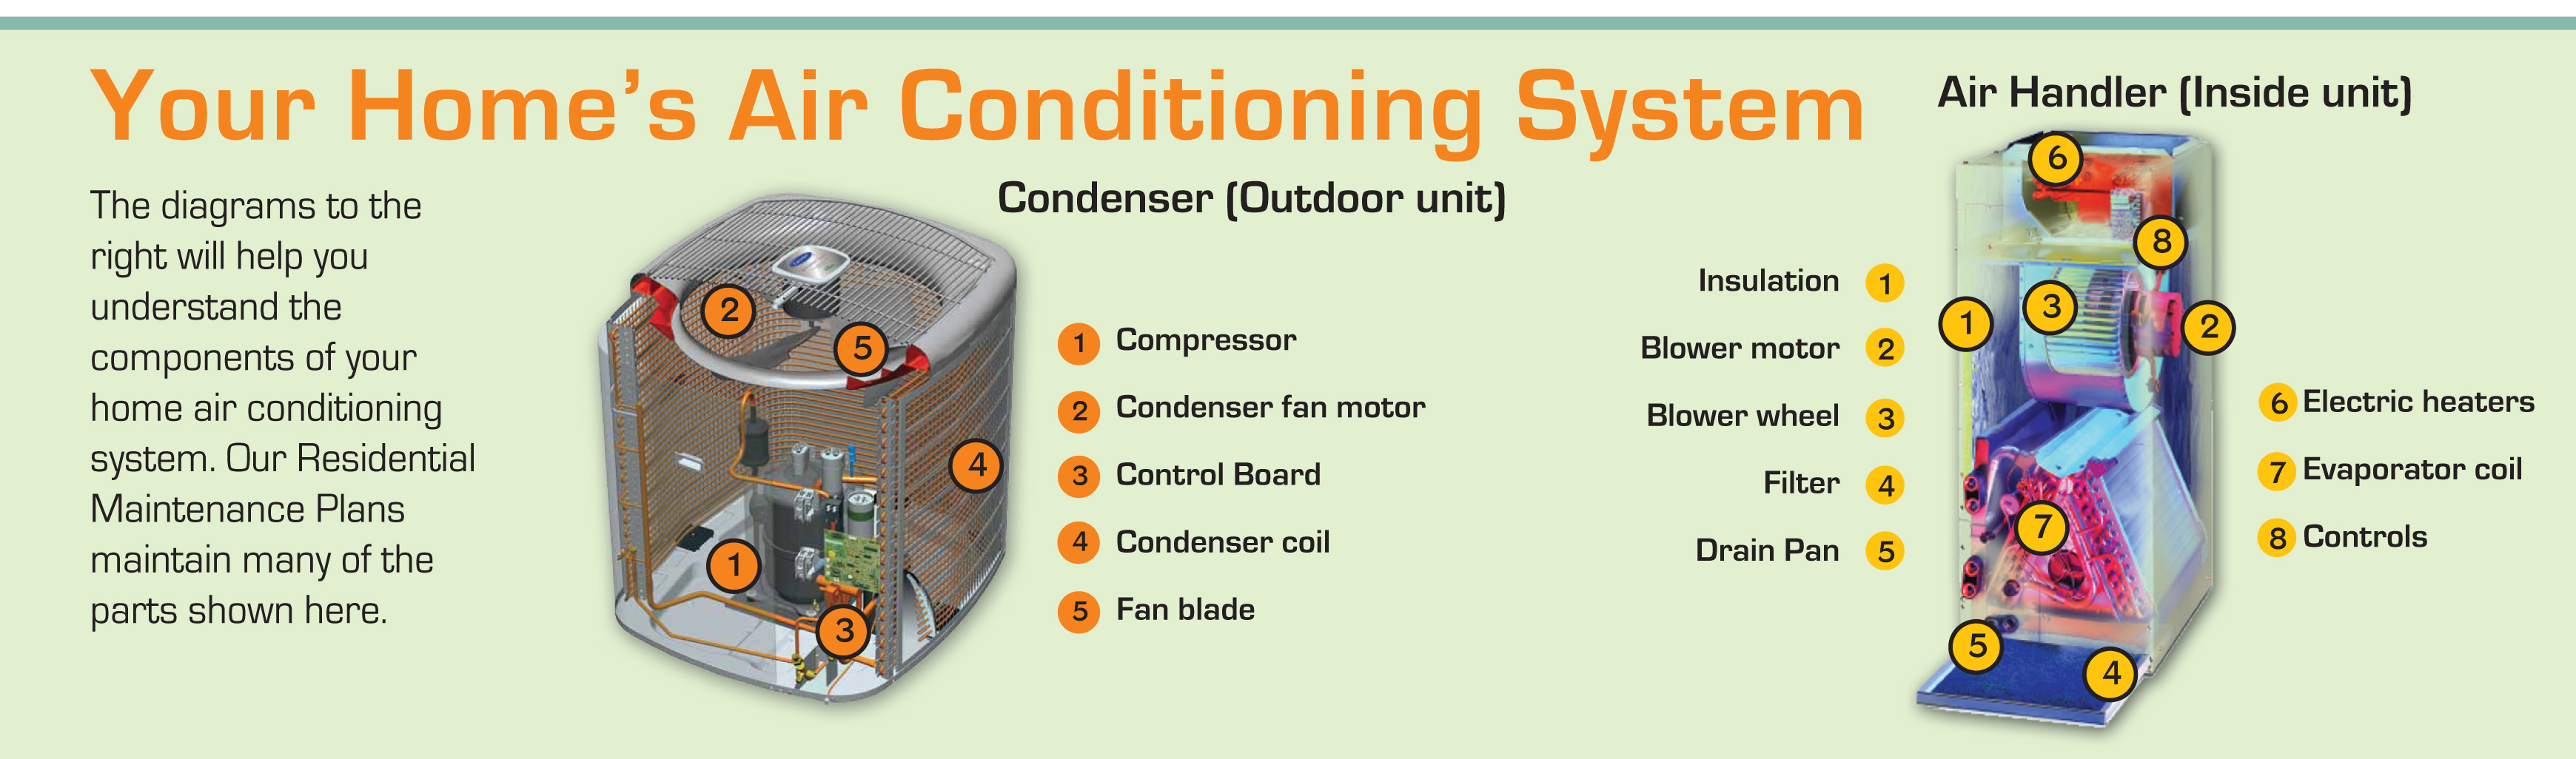 Air Conditioning Repair Company Conditioner Orlando Maintenance Tools Fixture Circuit Board